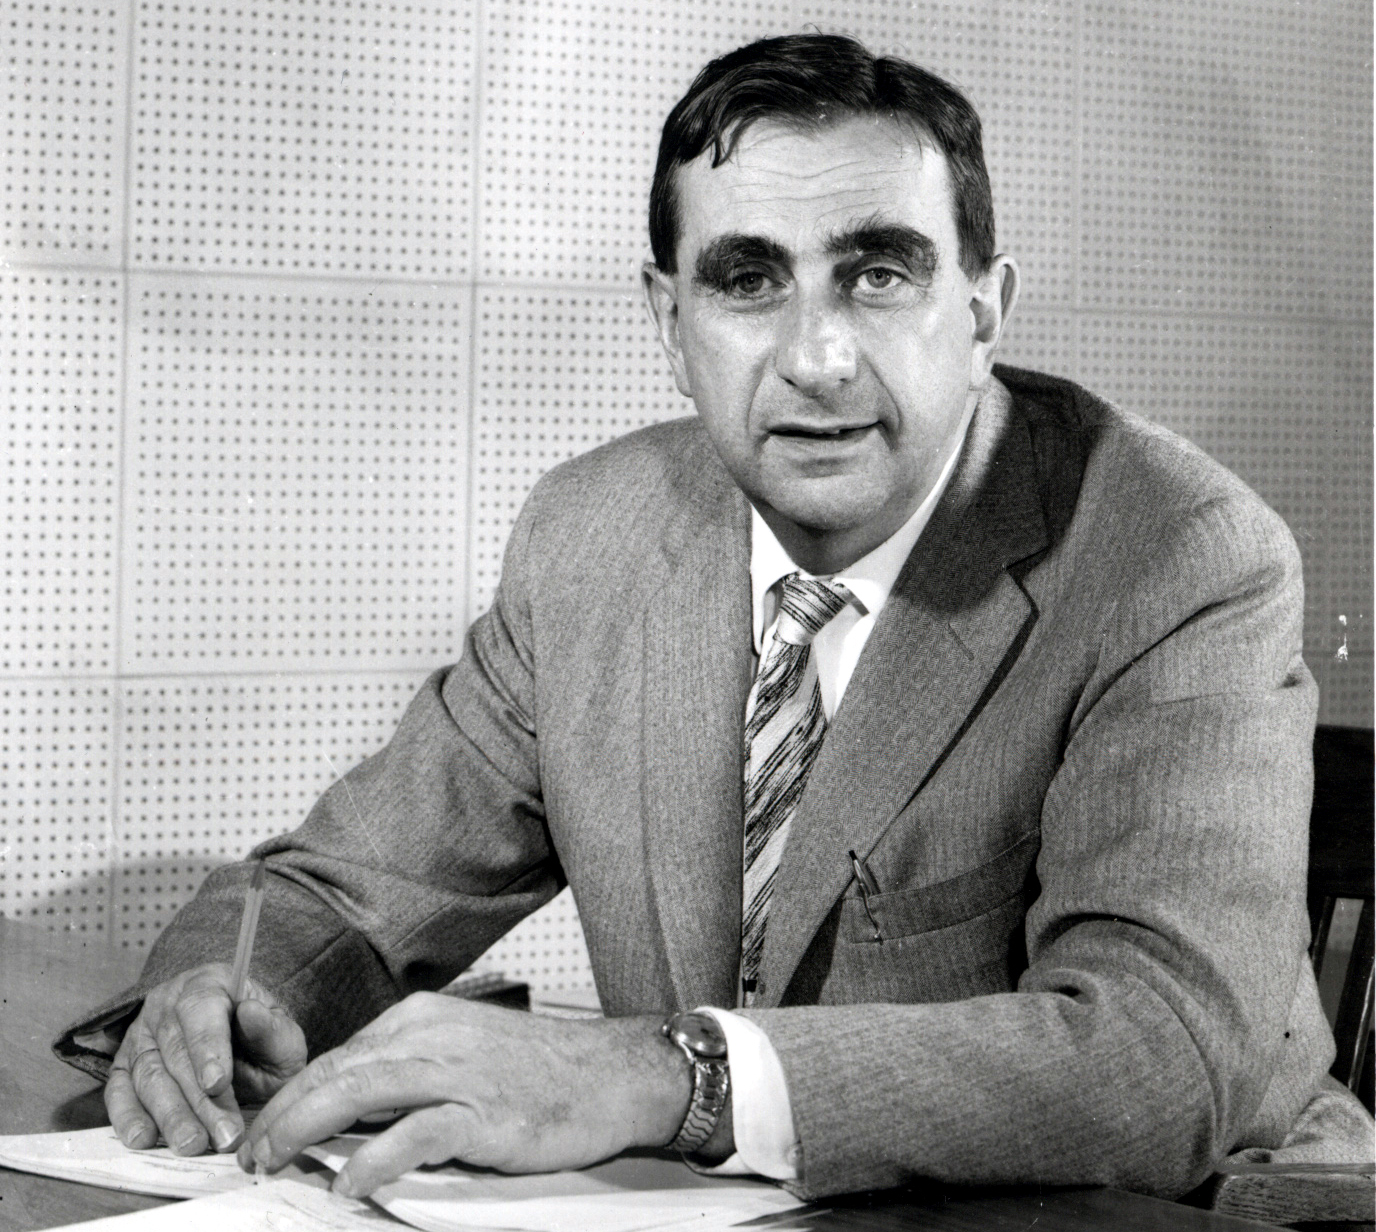 edward teller cnn interview Edward teller, considered the father of the hydrogen bomb, was a key figure in  the manhattan project at los alamos teller goes into detail about his work on.